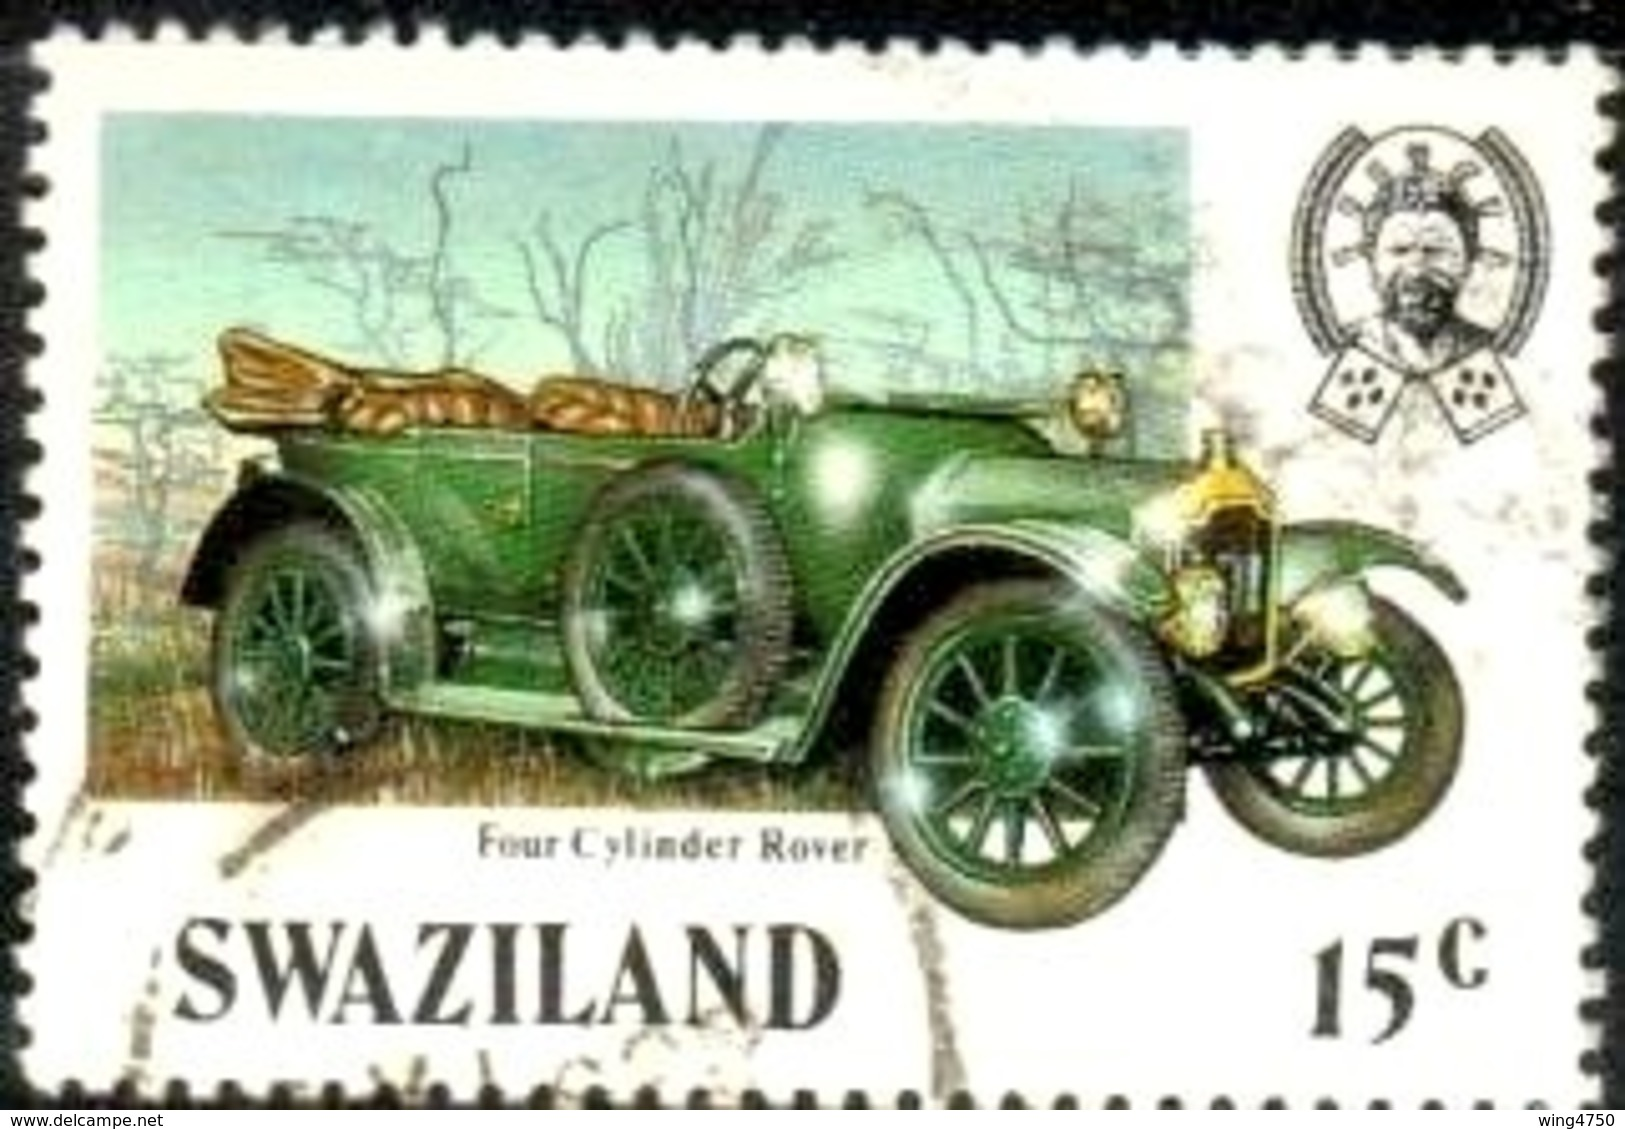 Classic Automobile, Four-cylinder Rover, Swaziland Stamp SC#482 Used - Swaziland (1968-...)